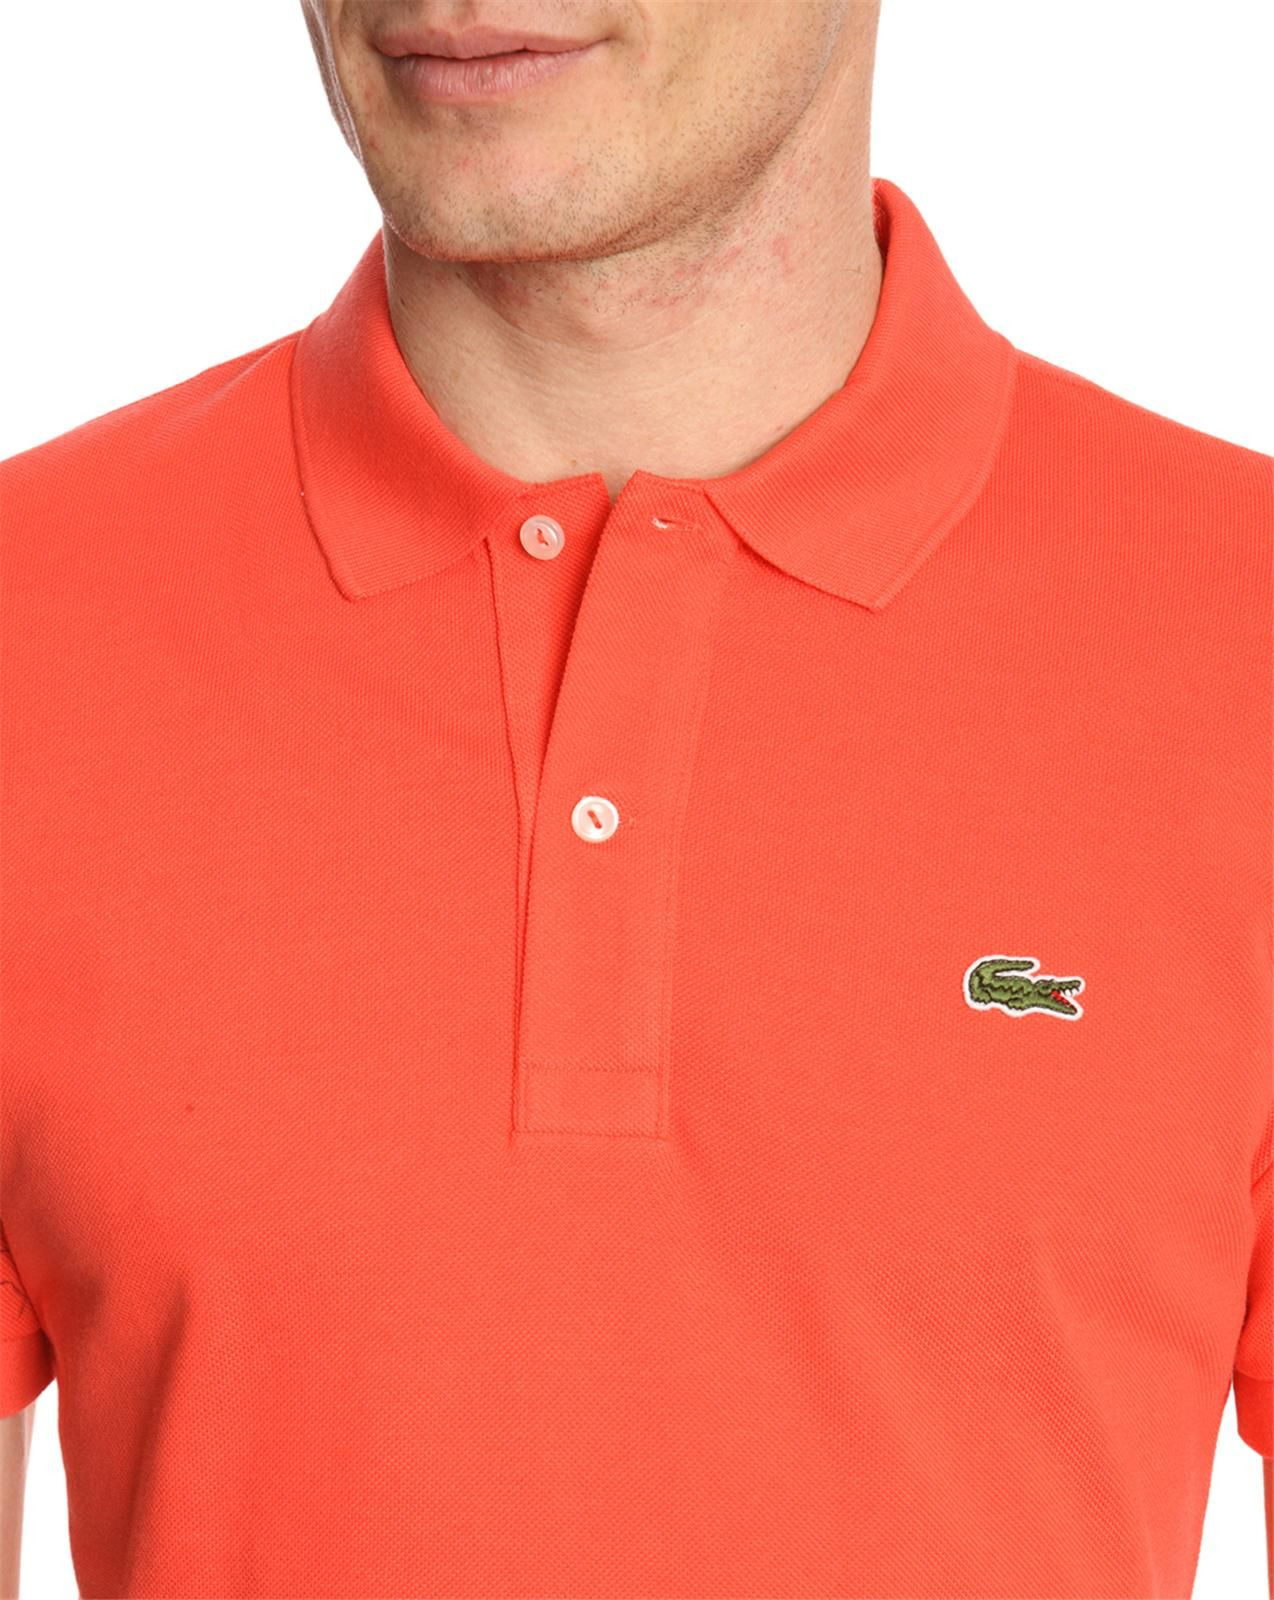 Lacoste slim fit shortsleeved coral polo shirt in red for for Coral shirts for guys